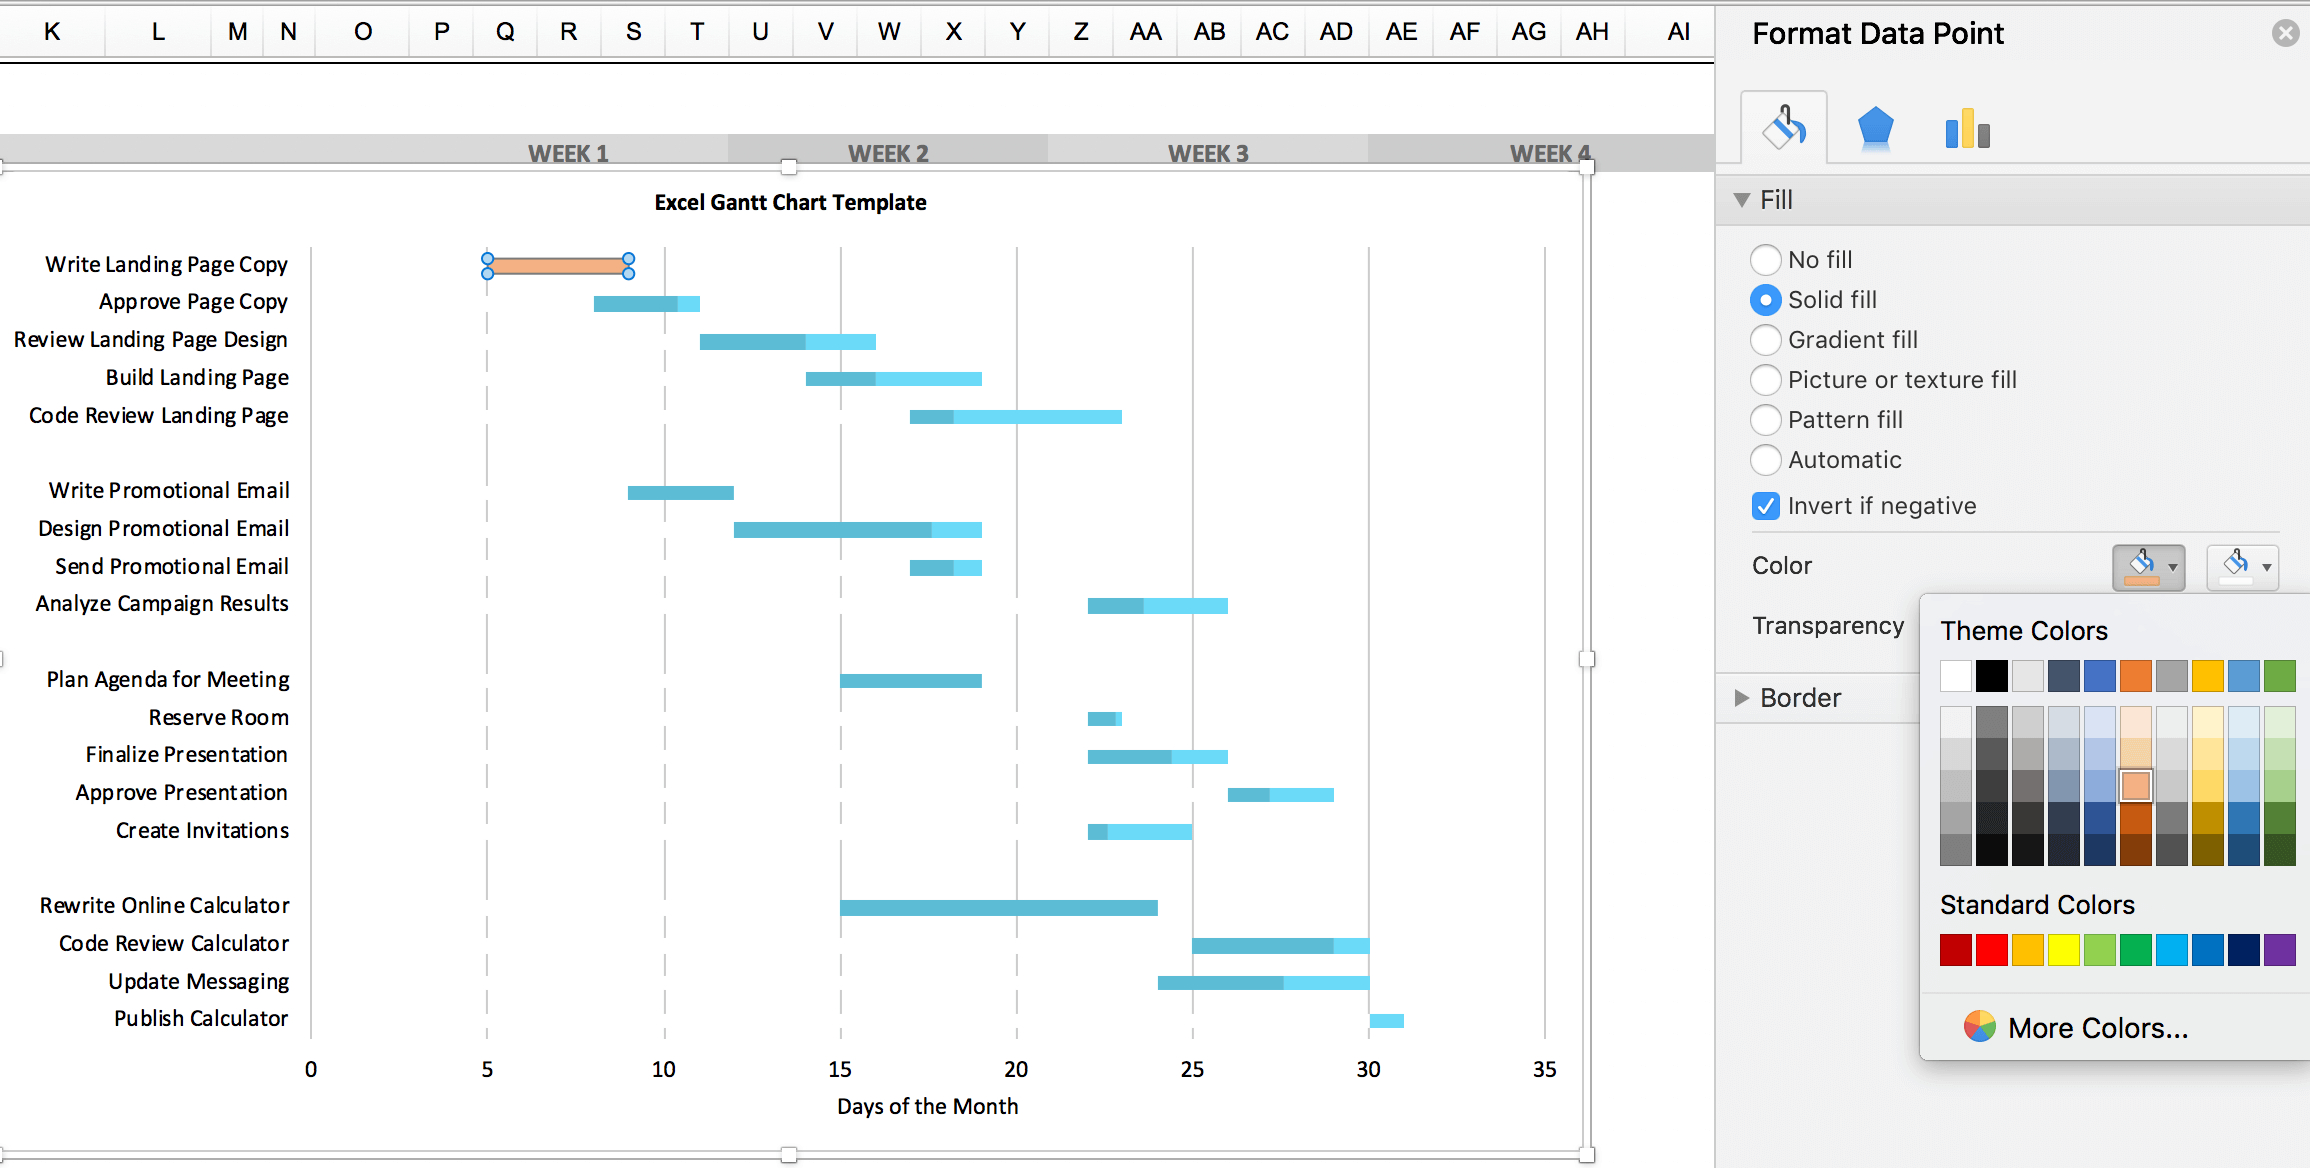 Free Gantt Chart Excel Template: Download Now   Teamgantt Throughout Gantt Chart Template Excel